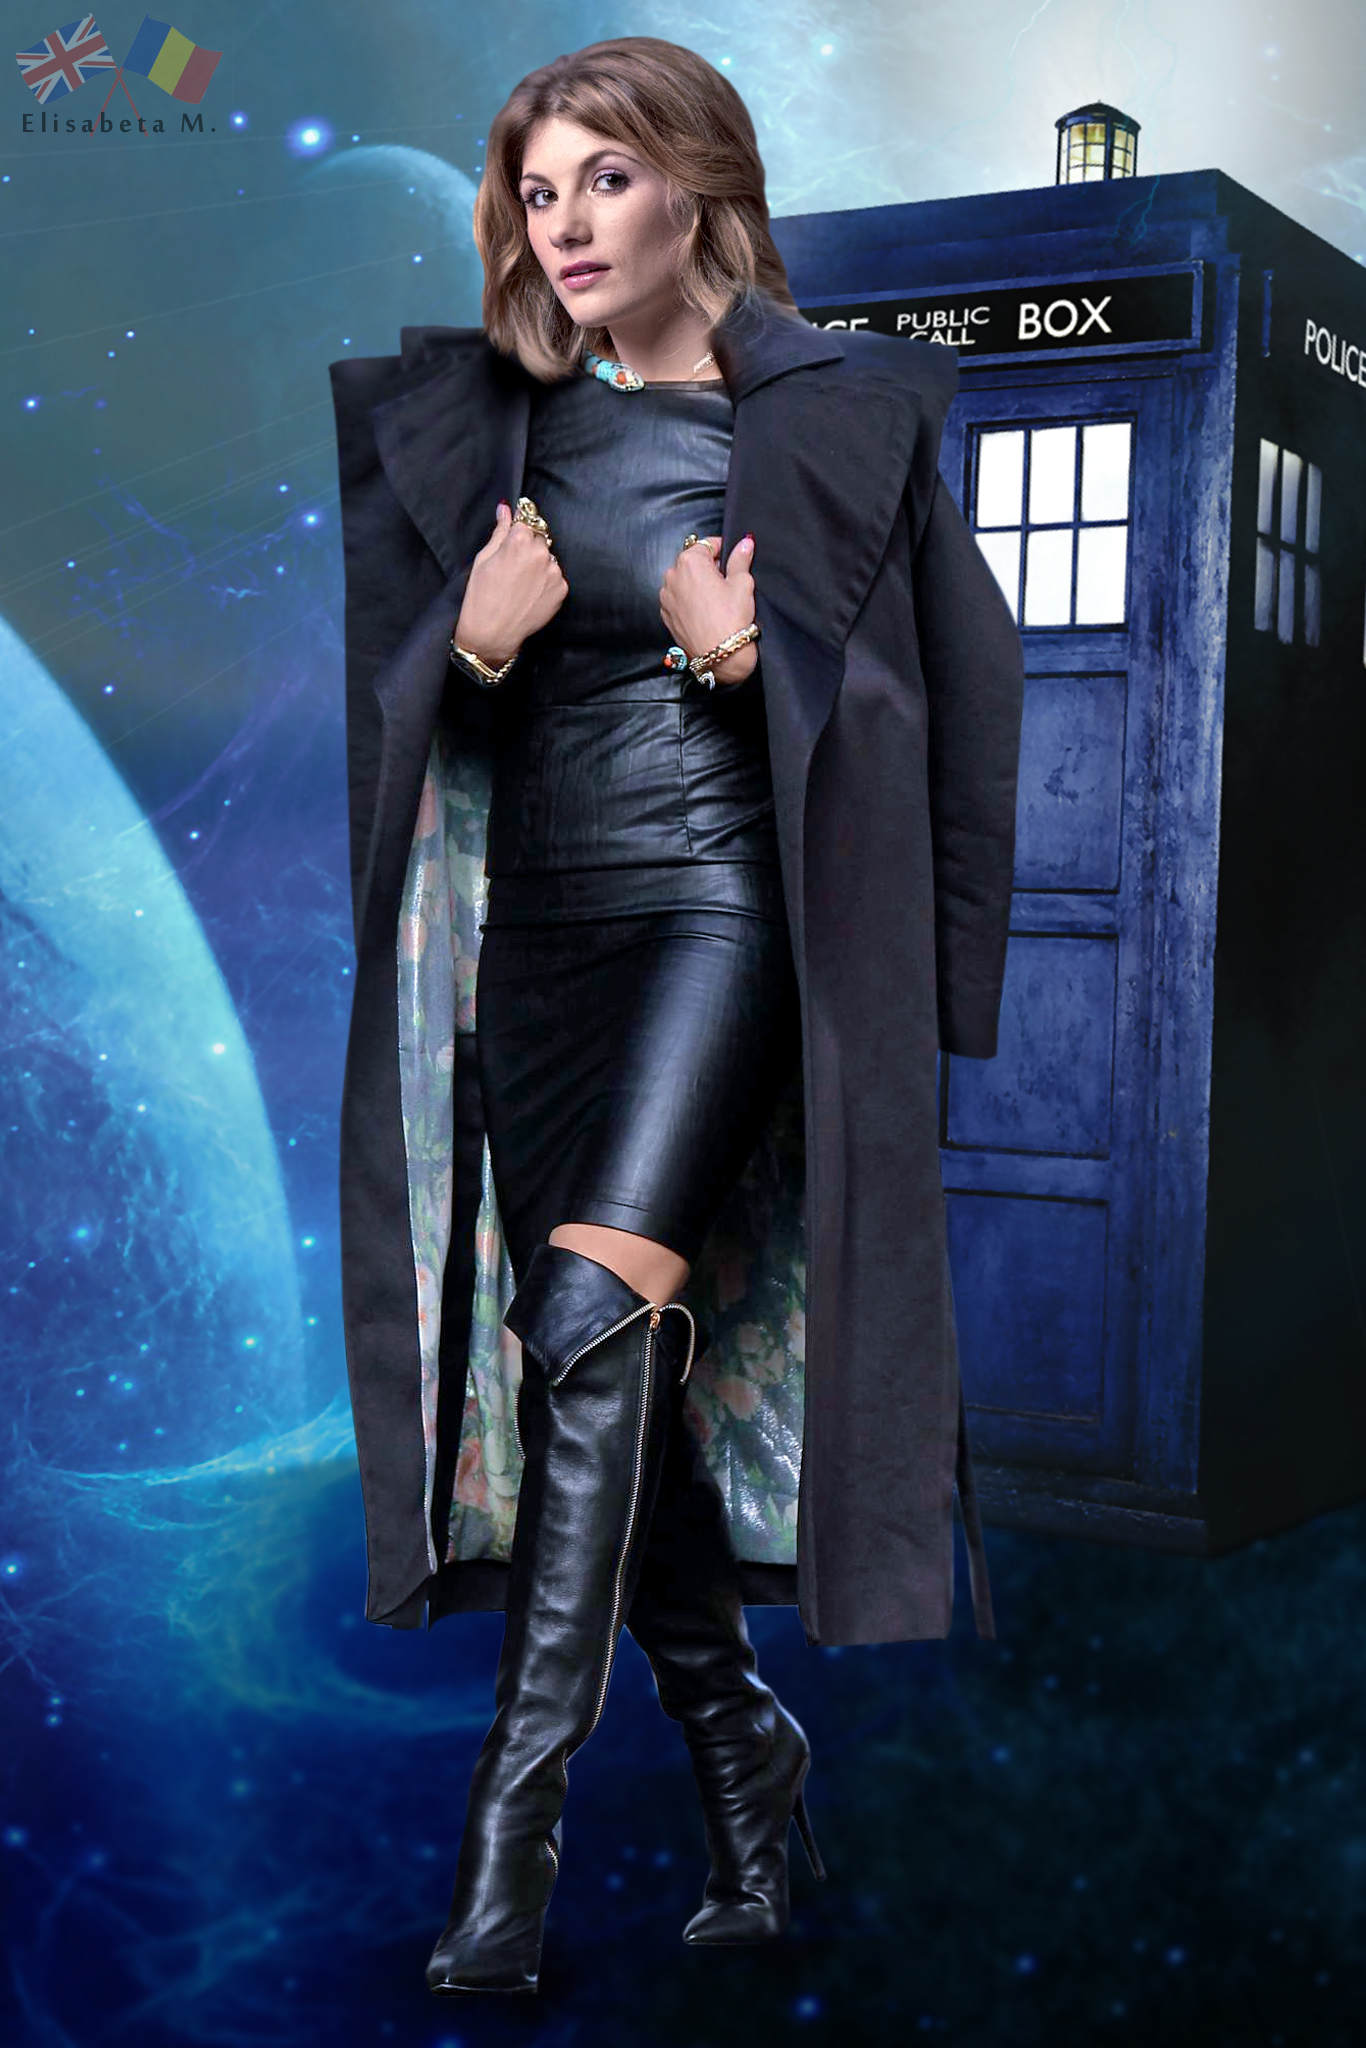 Jodie Whittaker Doctor Who Leather Fake 01 V02 By Elisabetam On